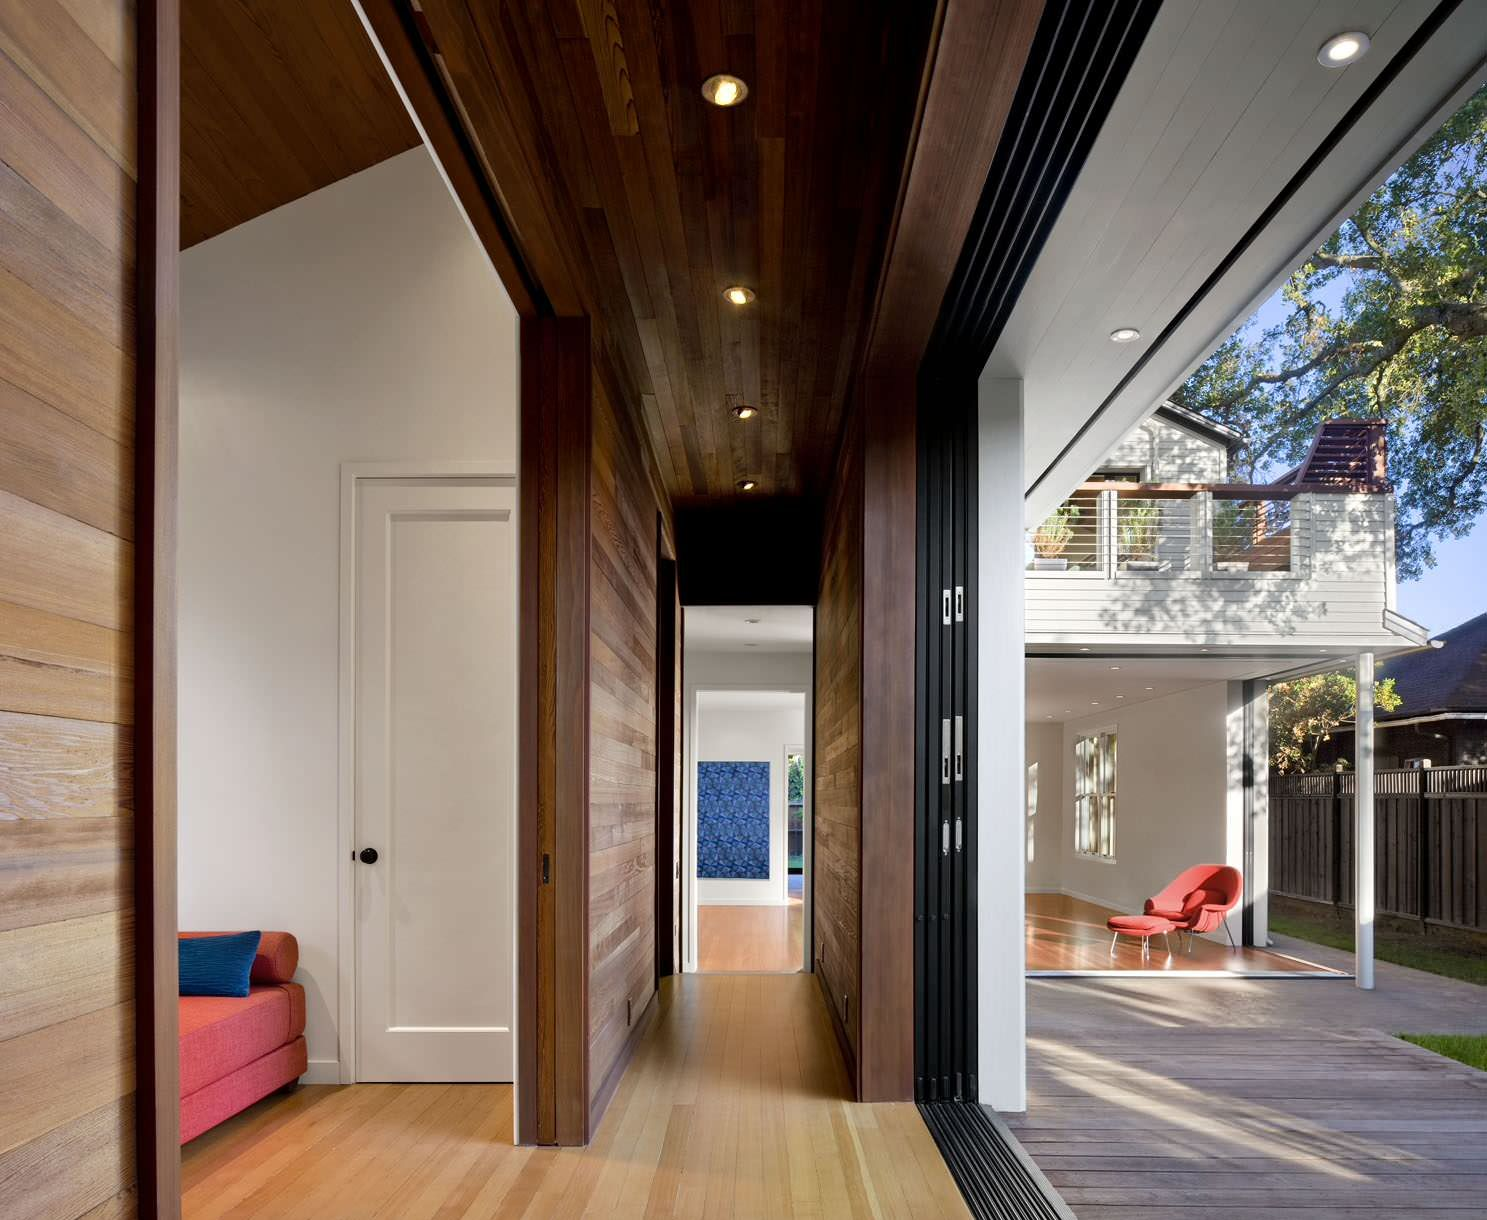 Striking Retractable Walls For Spacious Interior Ideas: Retractable Walls  For Hall Design With Wood Flooring